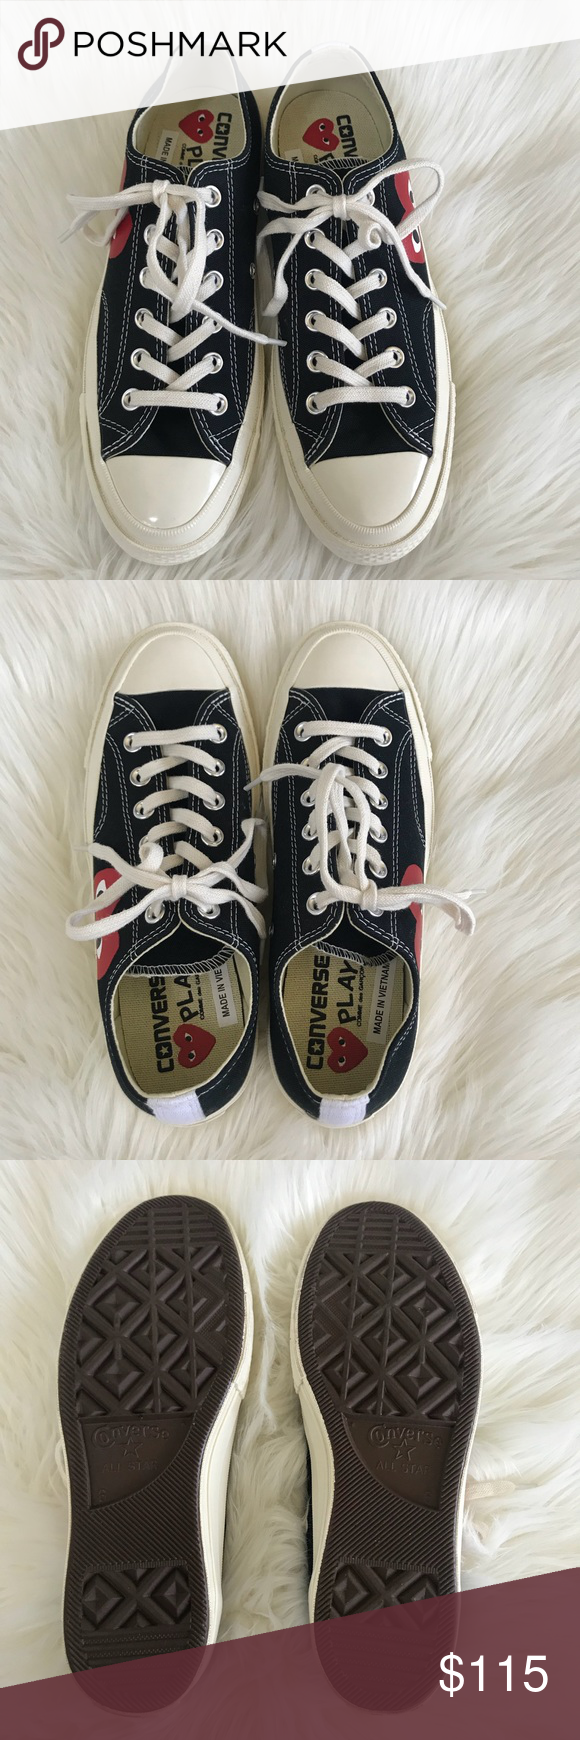 x Converse Sneakers Size